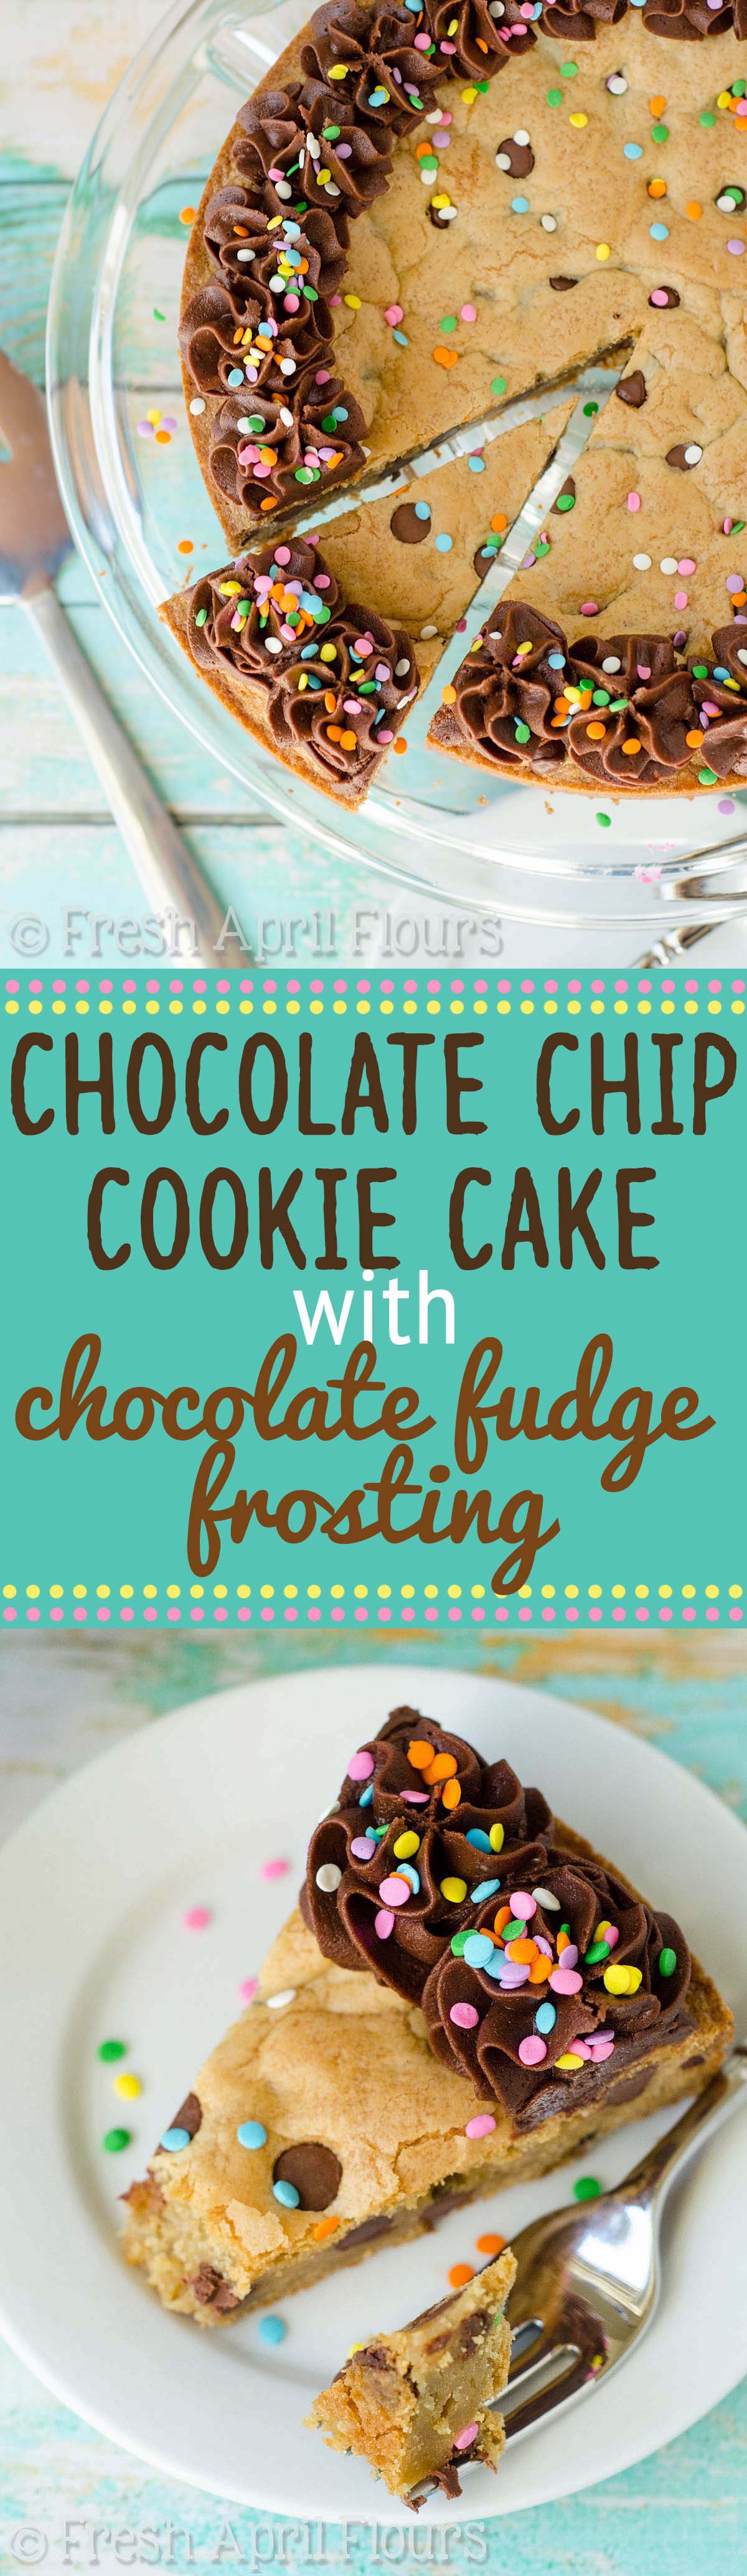 Giant cookie cake frosting recipe